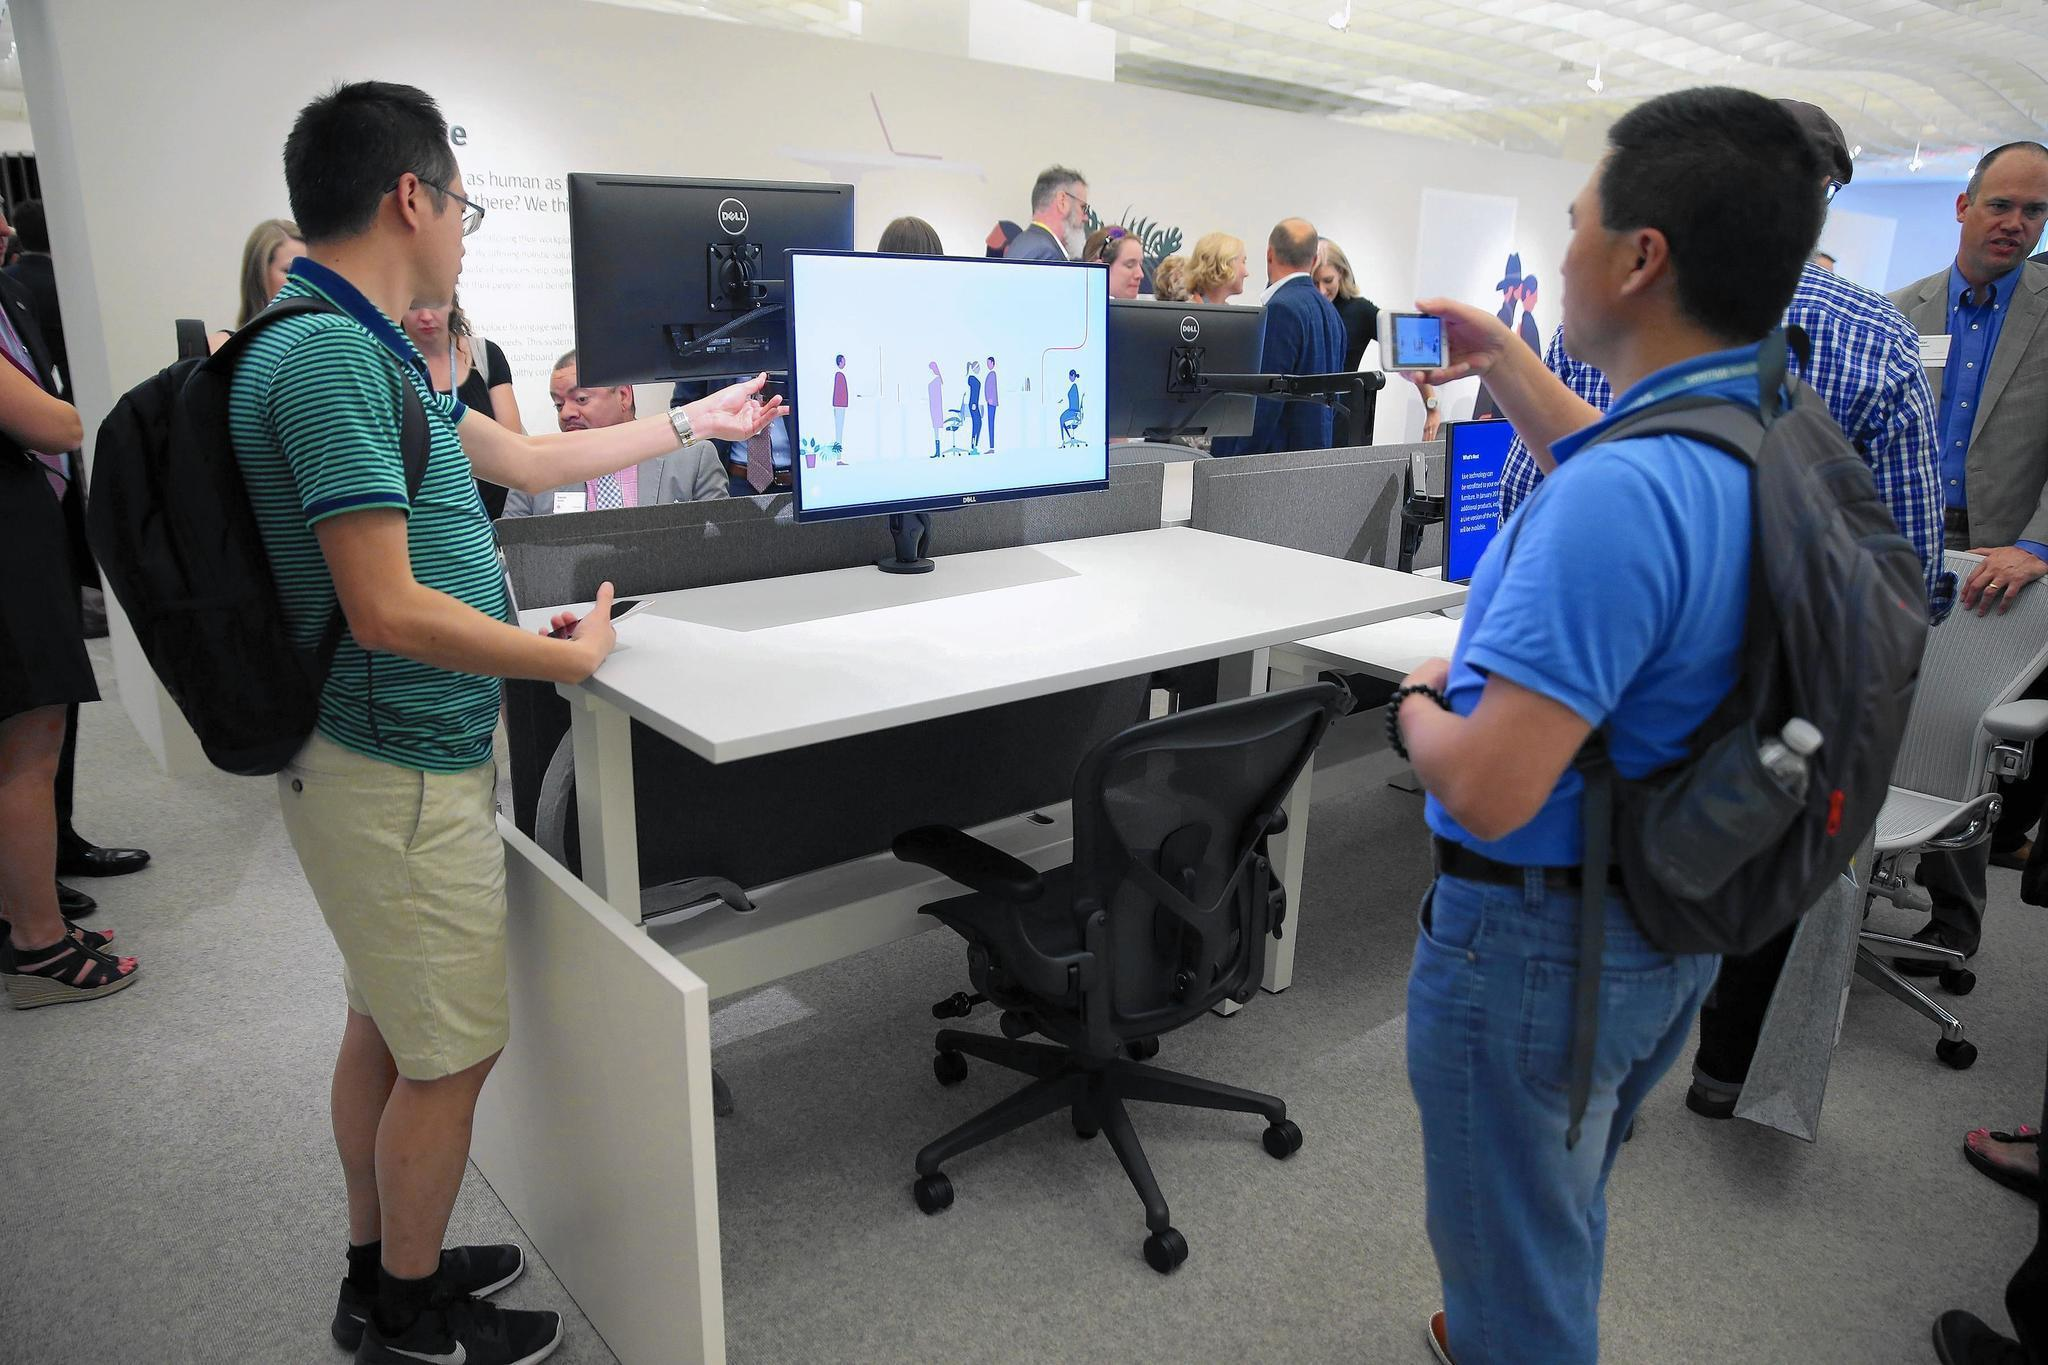 Smart chair and desk to track your backside for employers